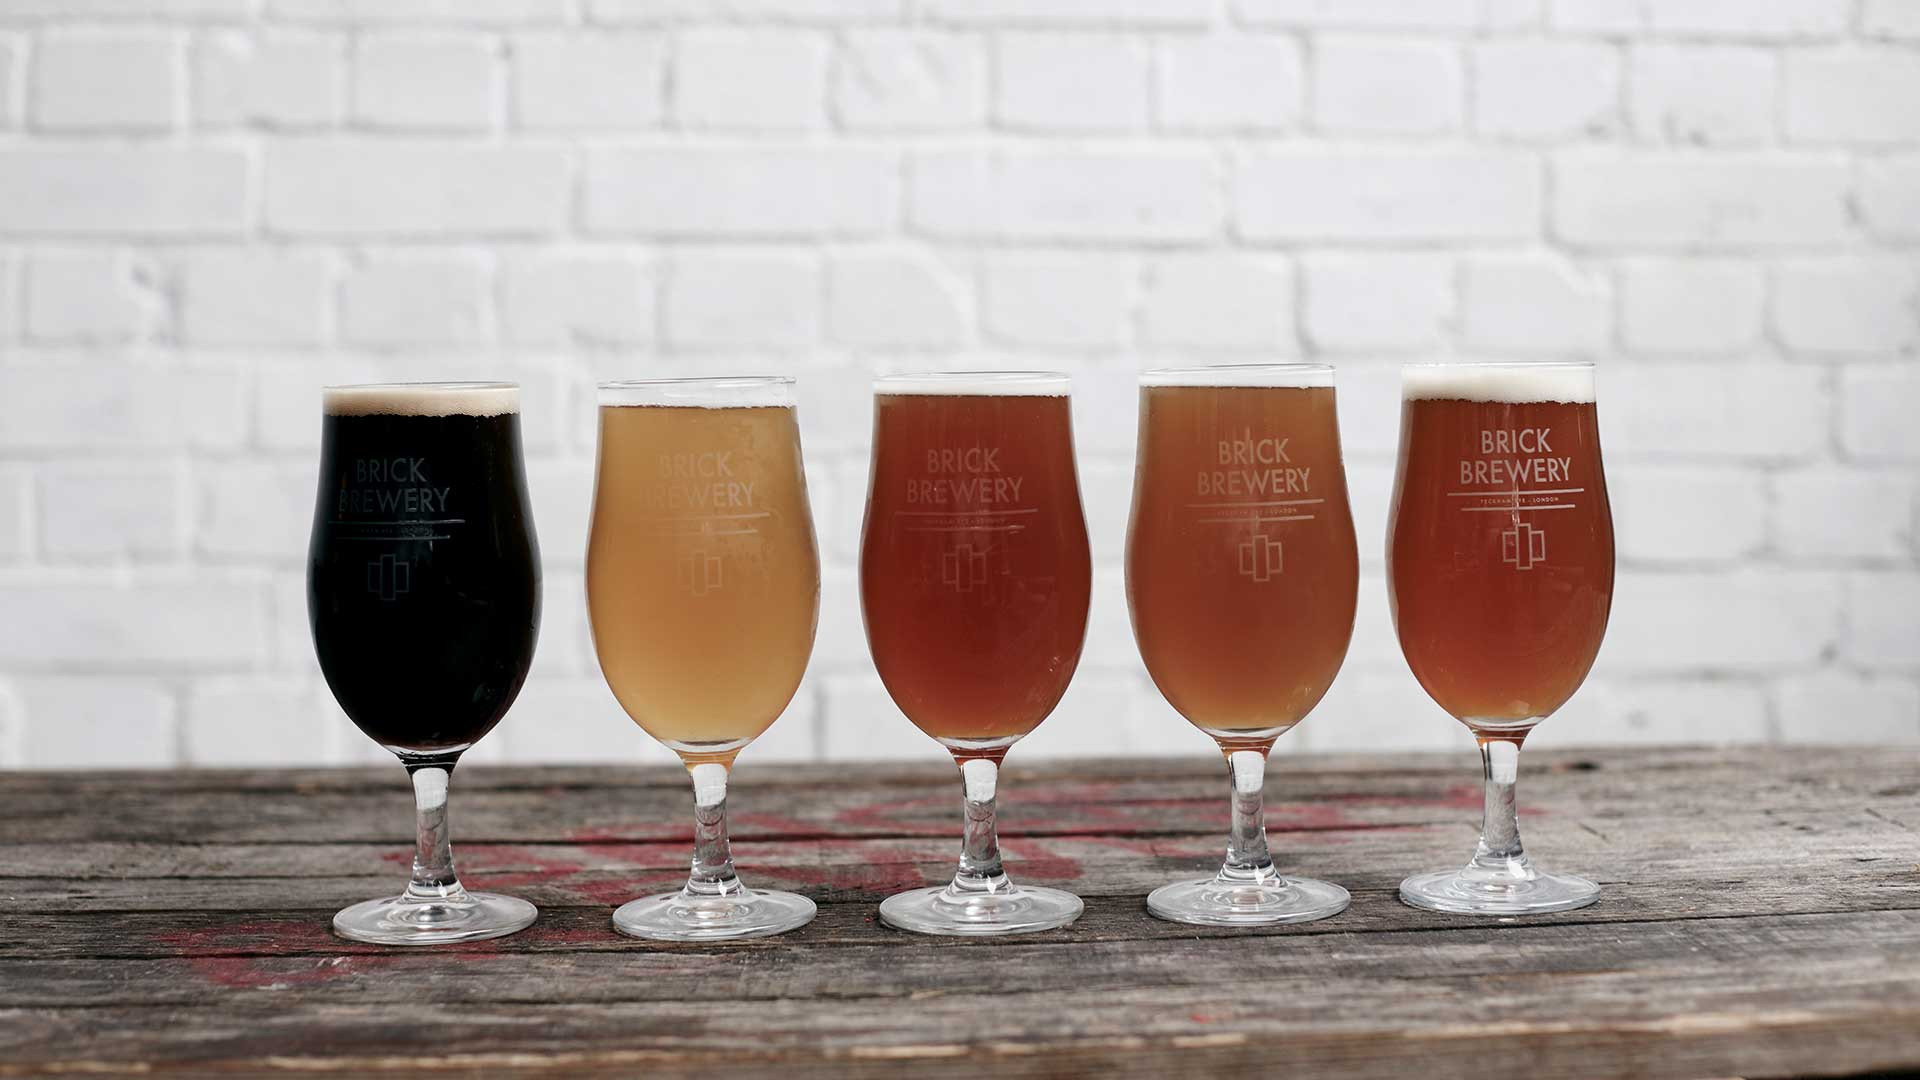 The lineup of beers at Brick Brewery, Peckham